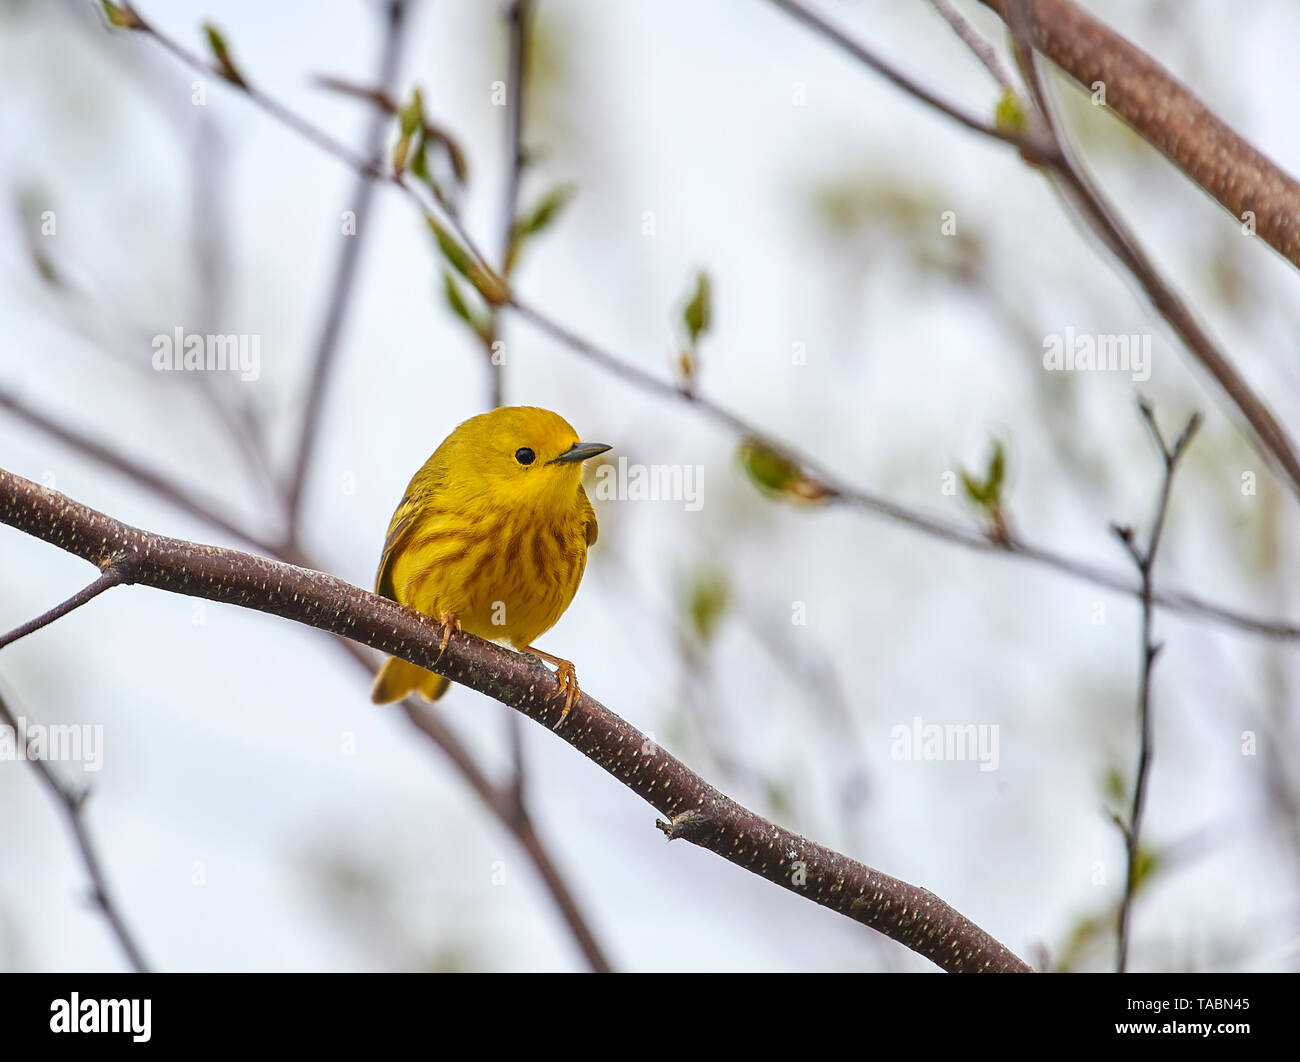 Yellow Warbler (Dendroica petechia) perched in a tree, French Basin trail, Annapolis Royal, Nova Scotia, Canada, - Stock Image